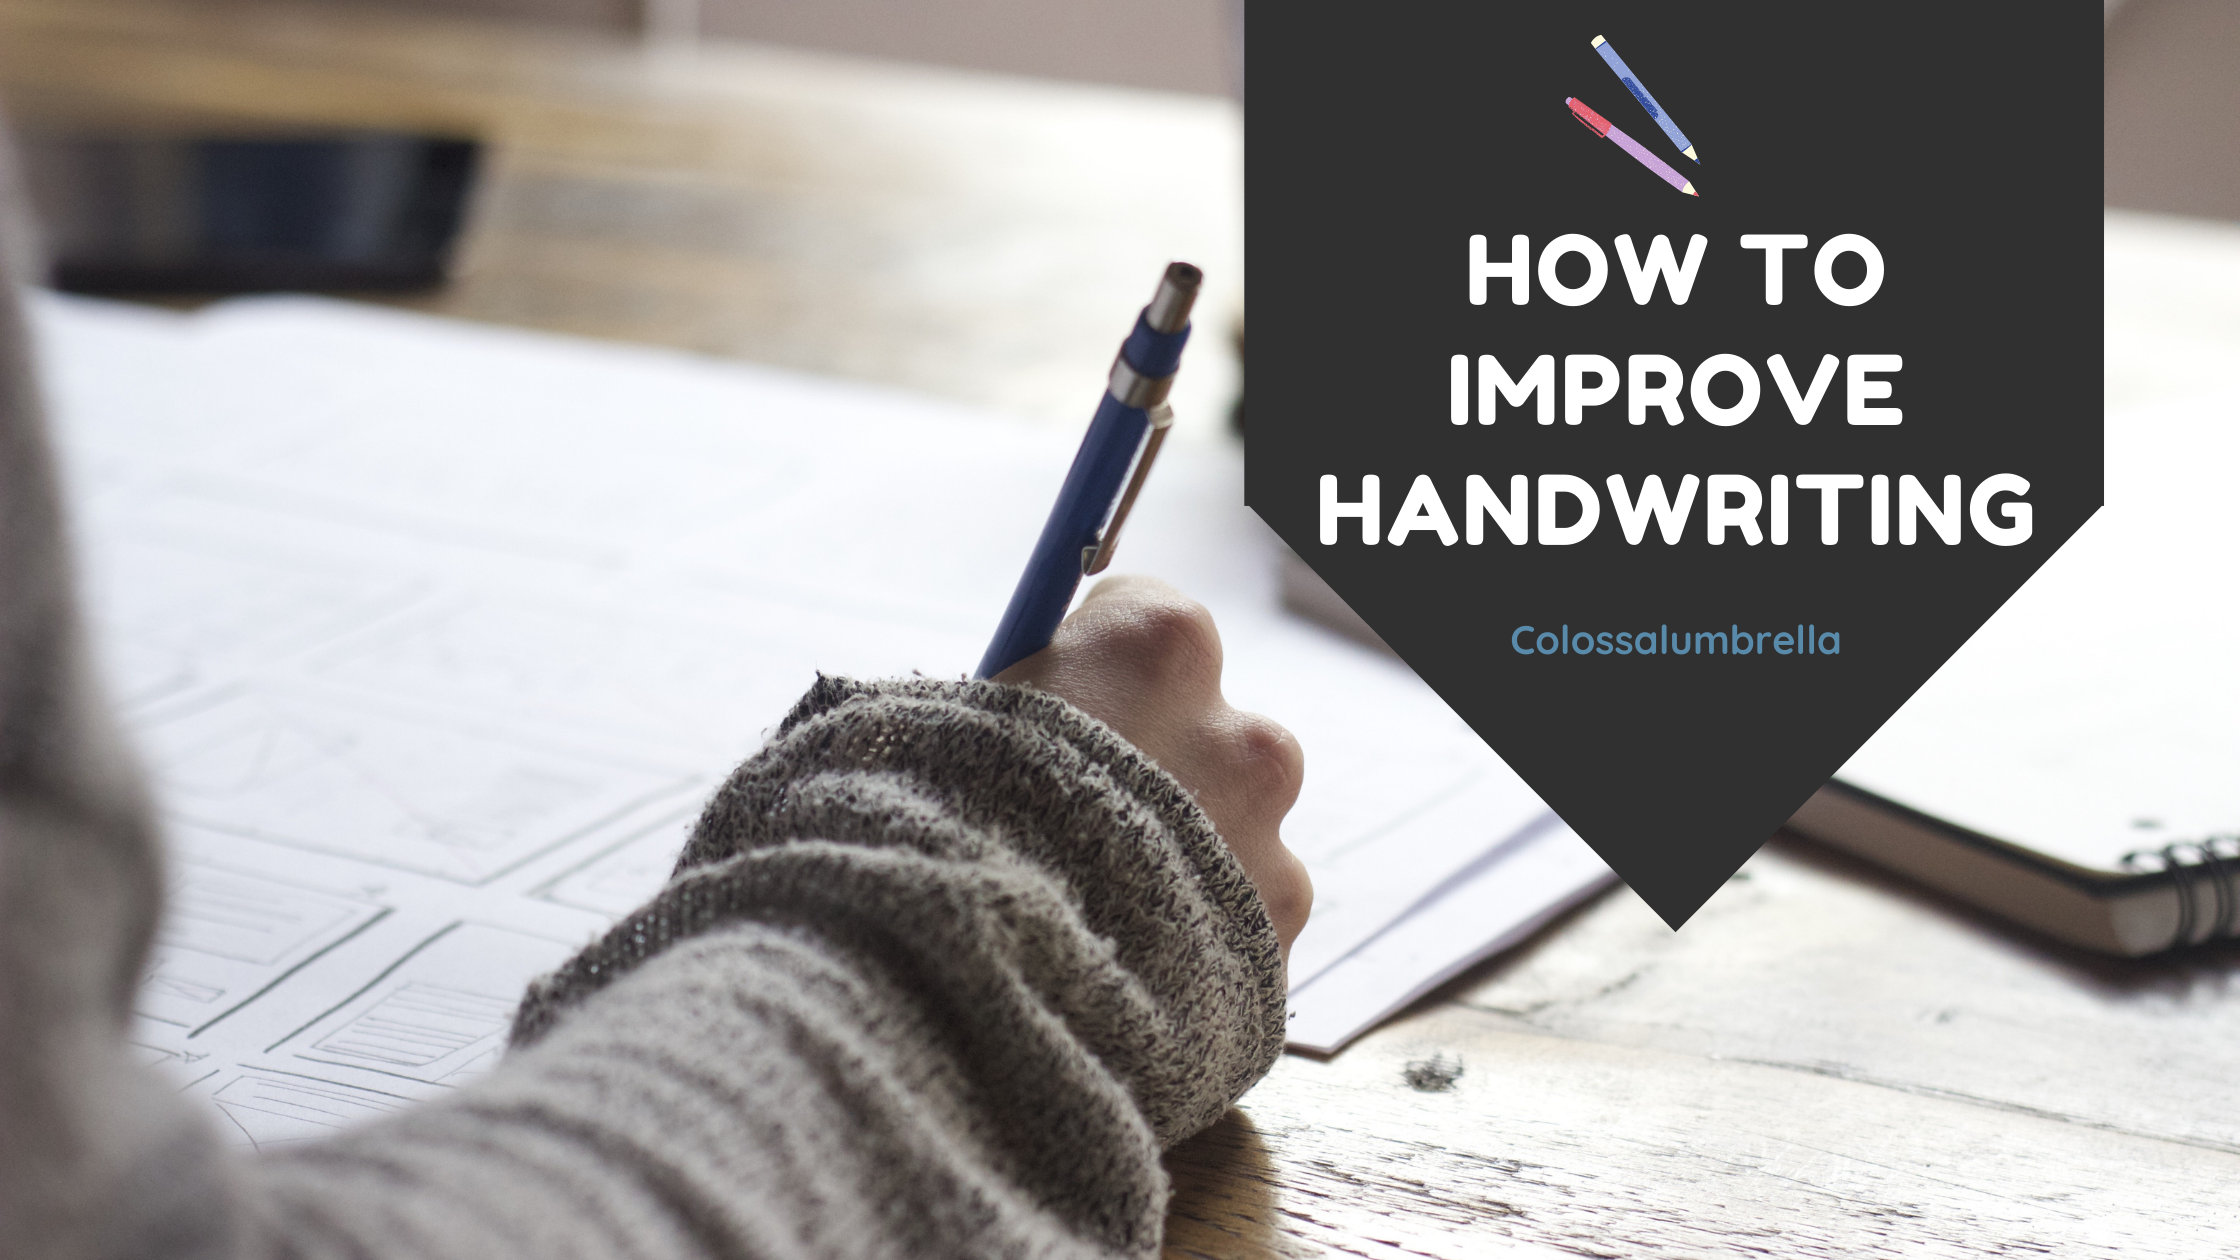 10 simple tips on how to improve handwriting